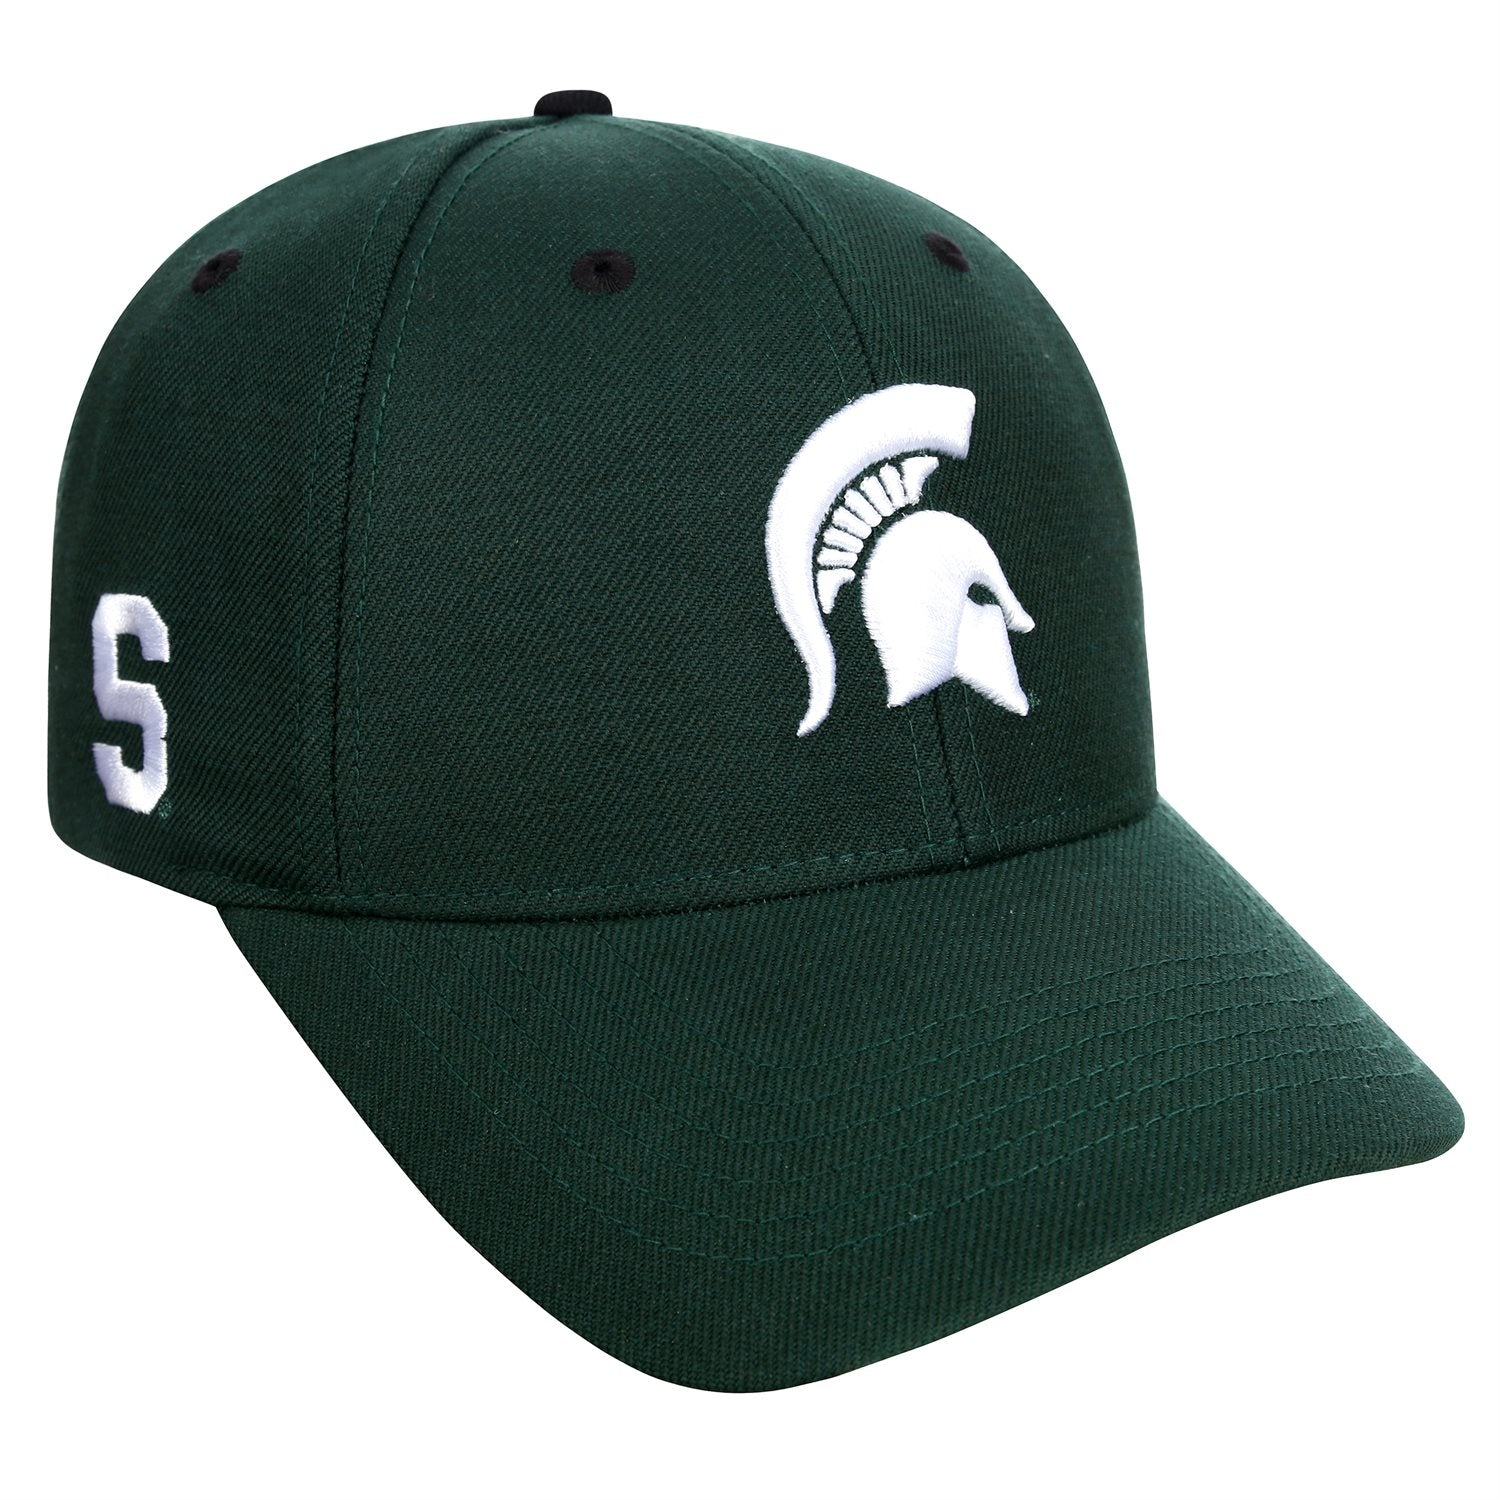 Michigan State Spartans Adjustable Strap Green Triple Threat Hat